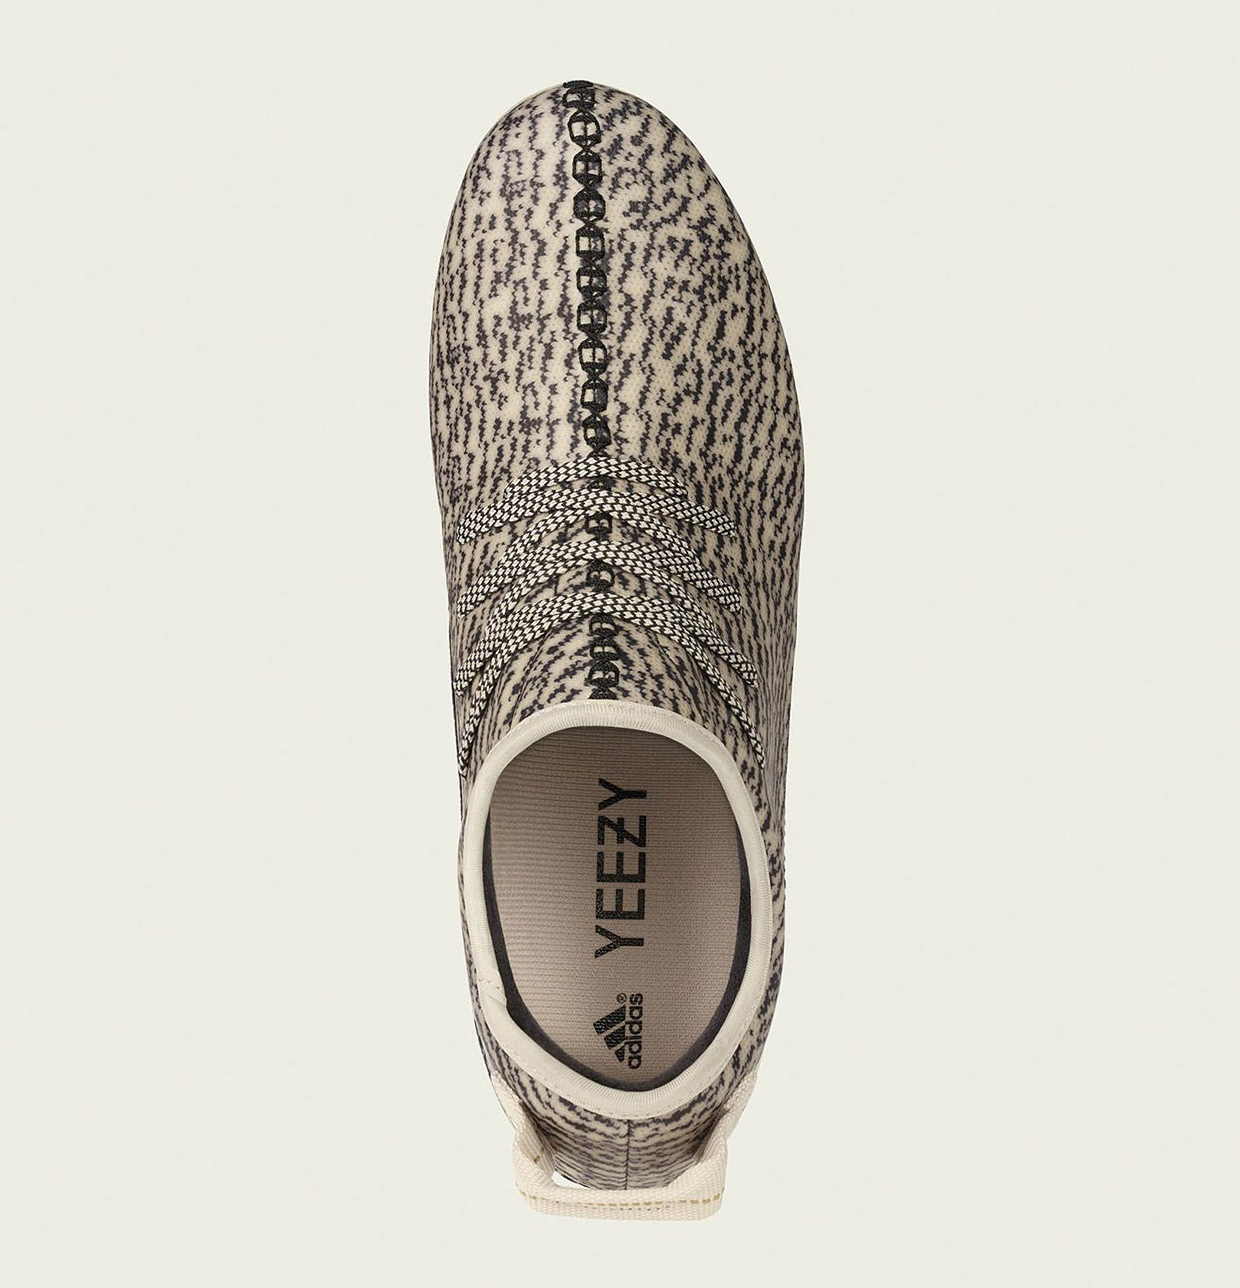 571f80fb50c18 Adidas Yeezy 350 Cleat Release Date